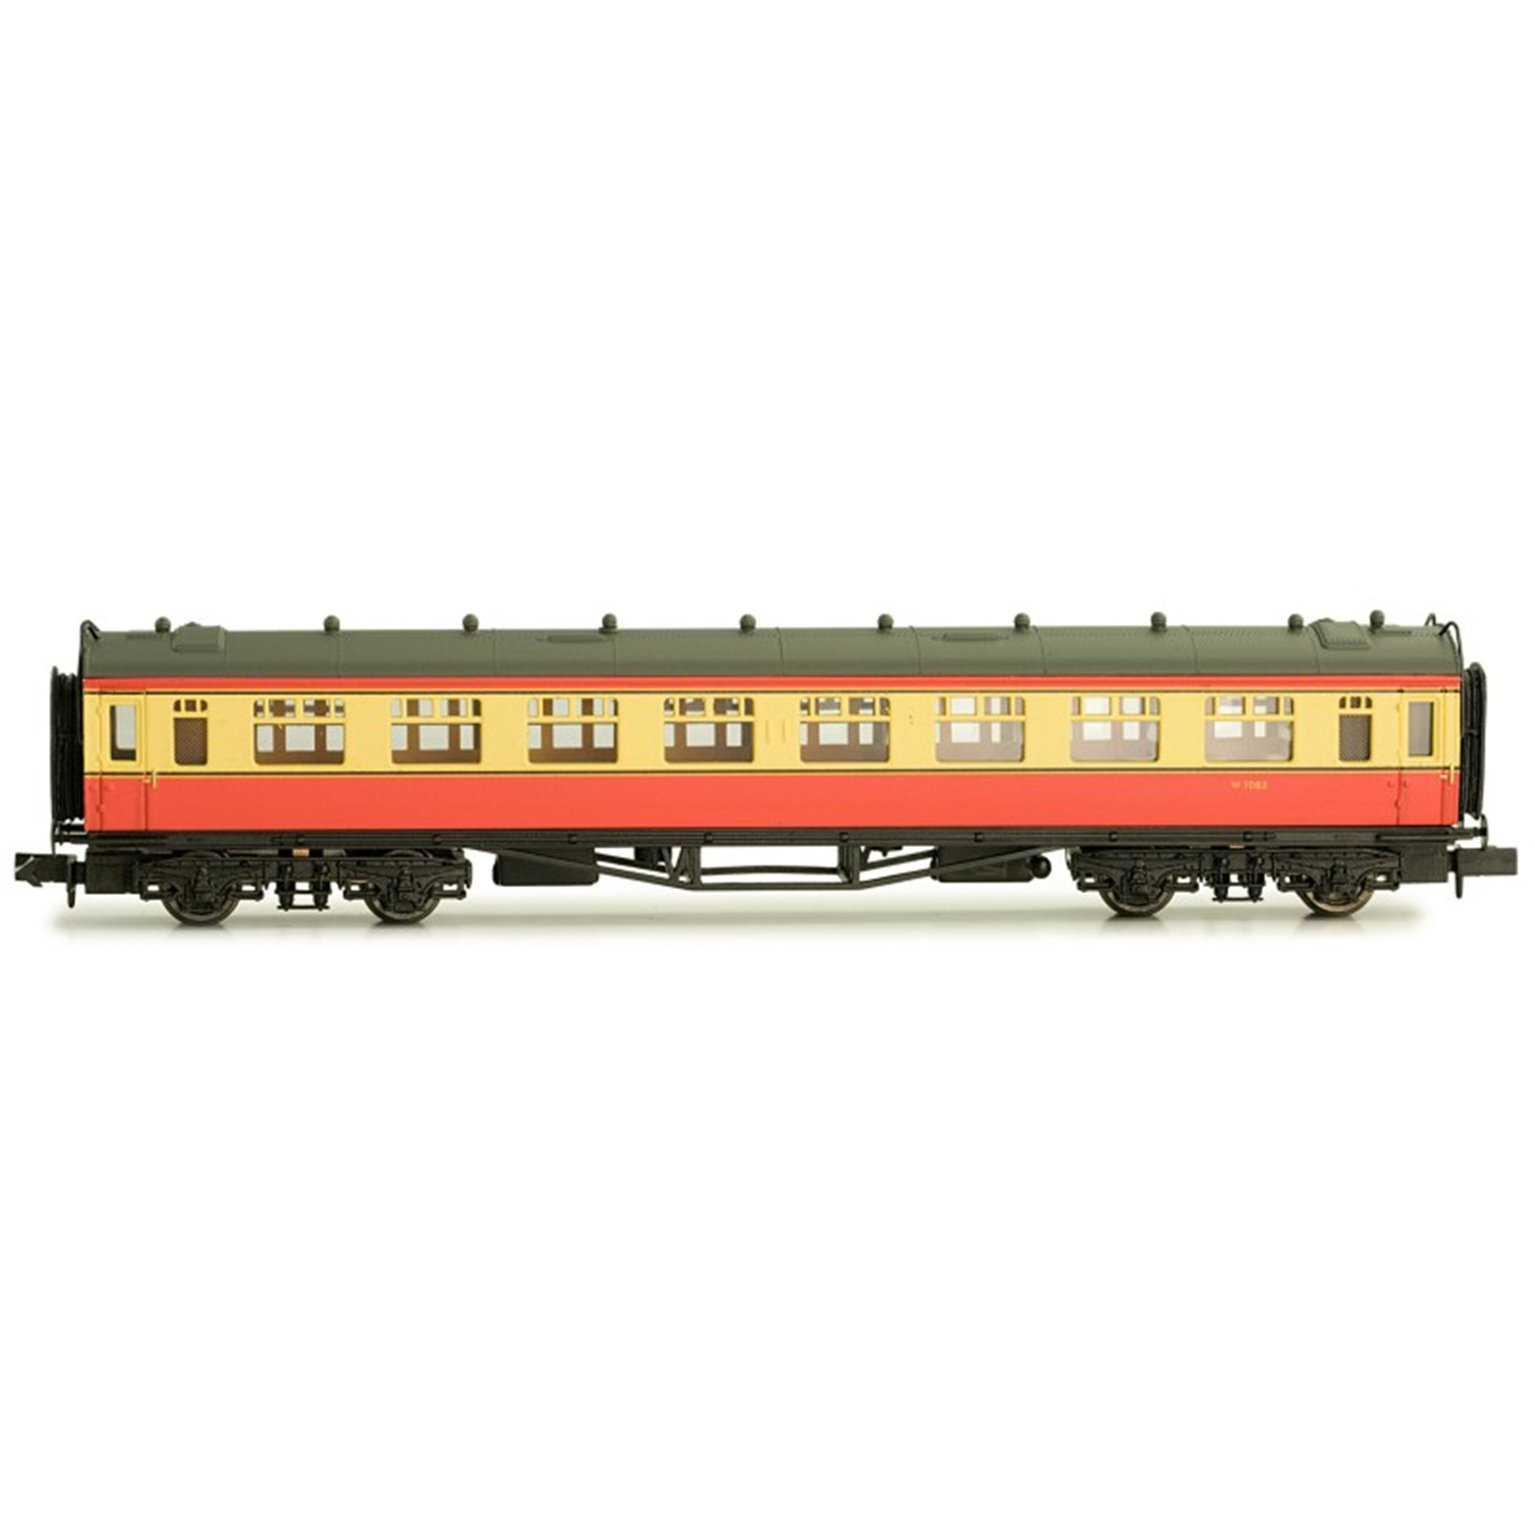 Collett second class W1083 in BR crimson and cream